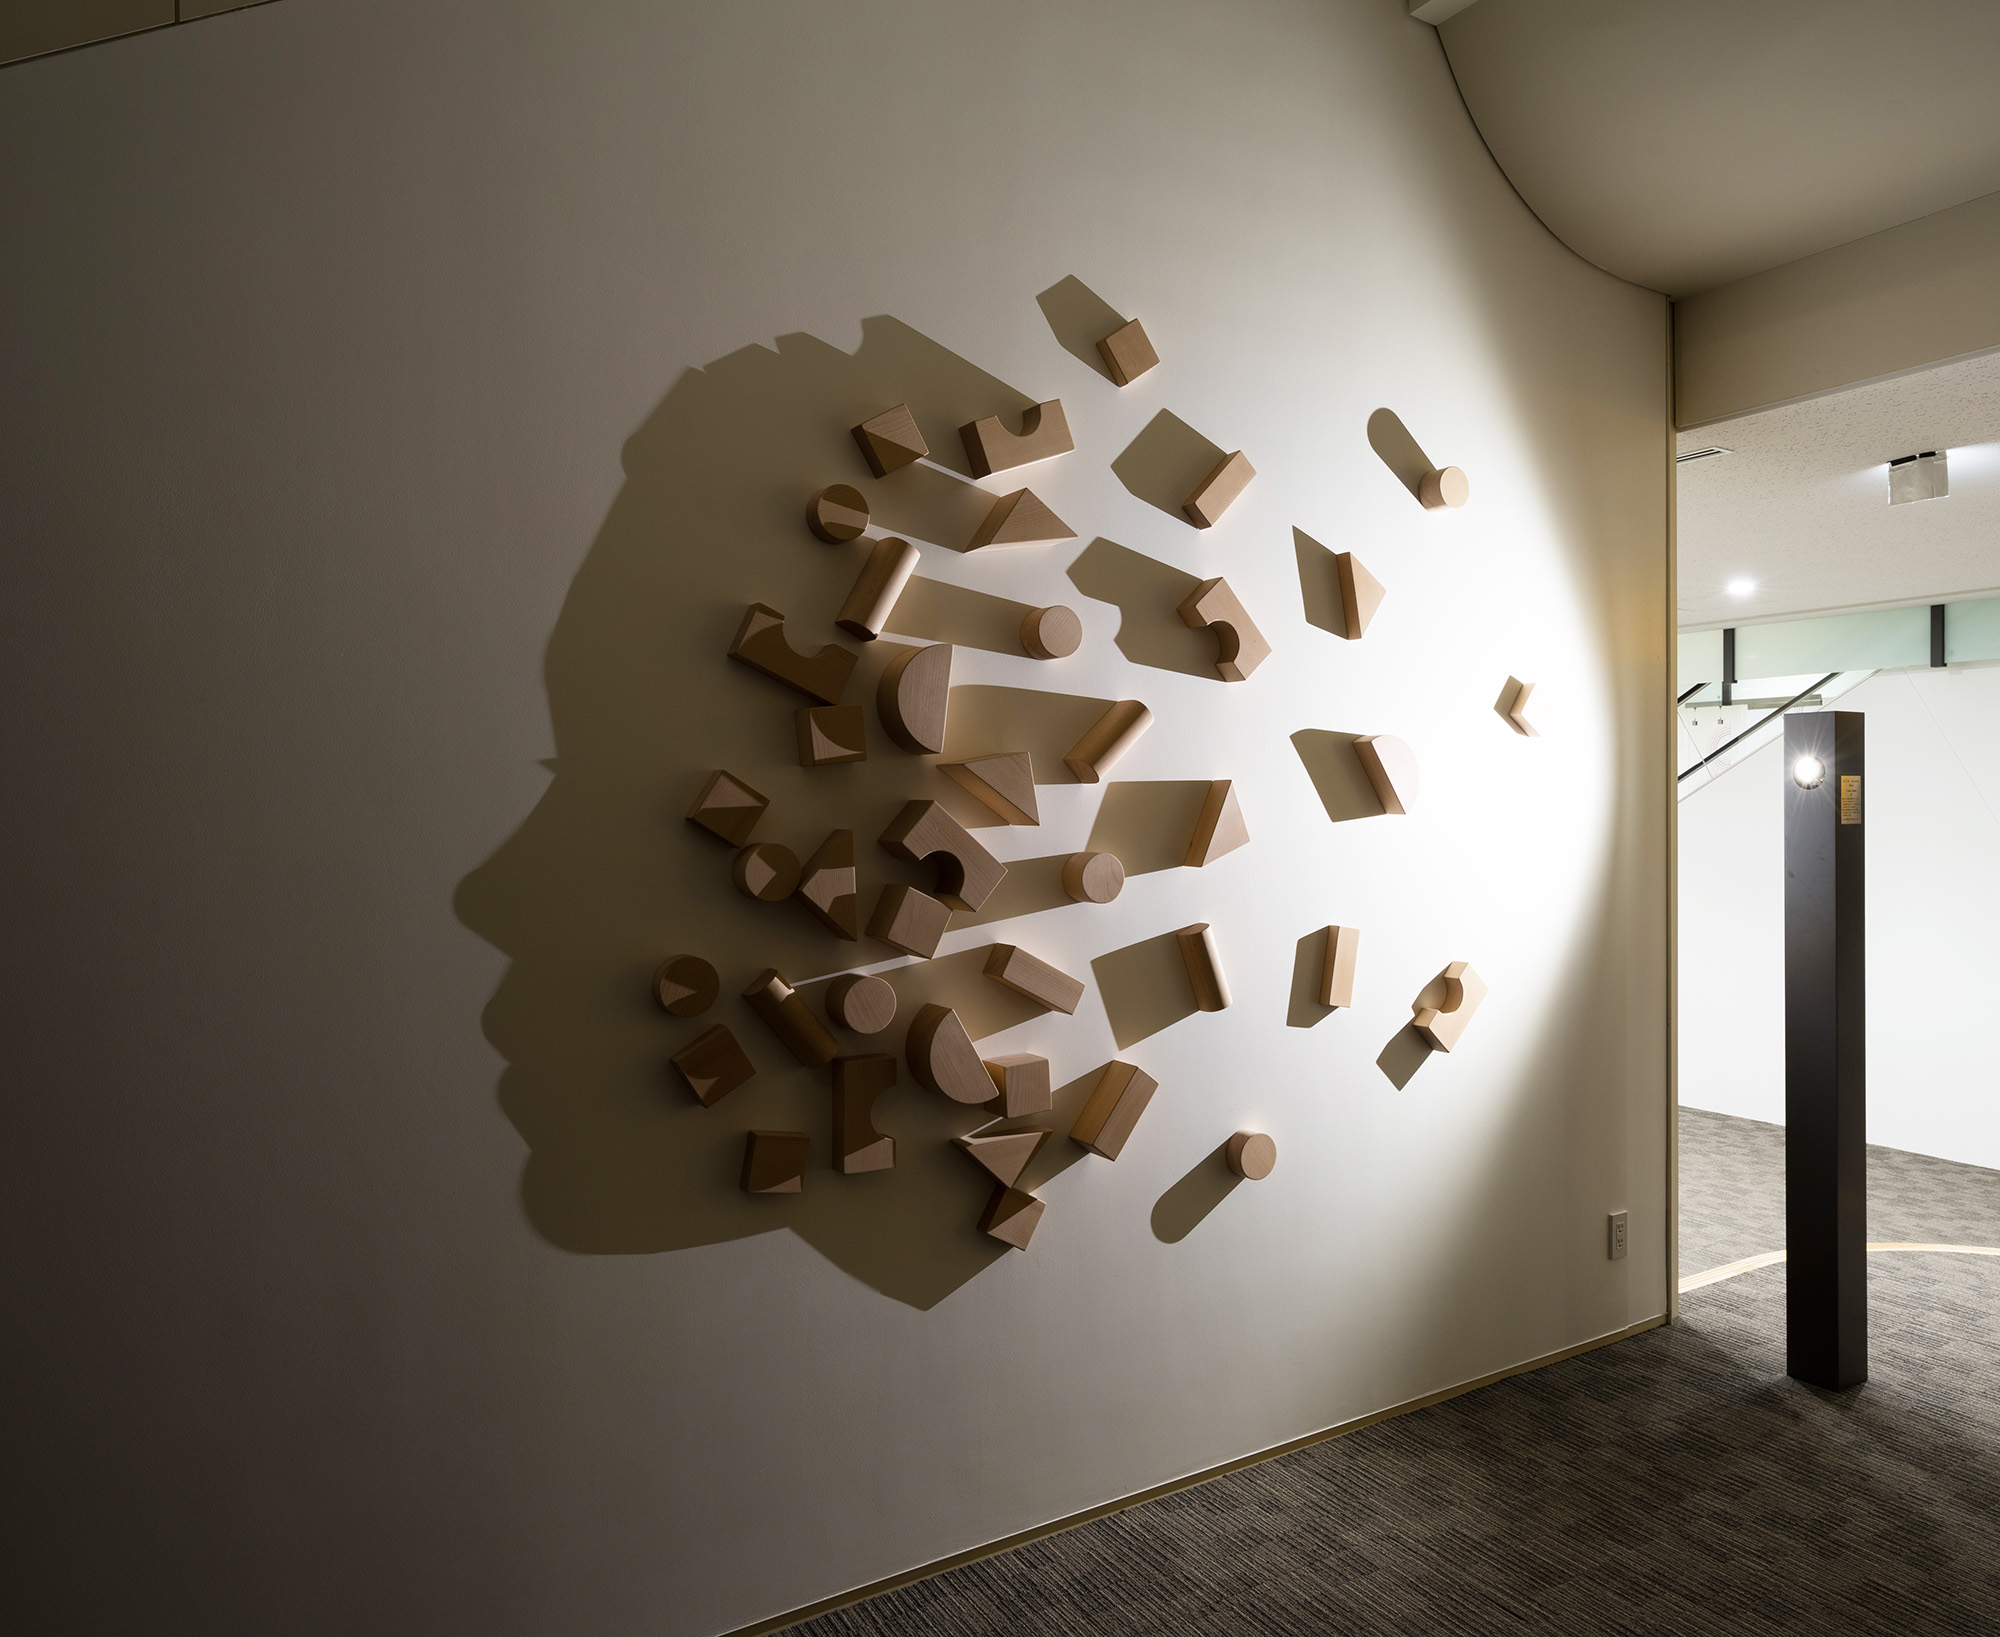 BUILDING BLOCKS    2014 H200, W300, D10 cm Carved wood, single light source, shadow Permanent Collection Otsuma Women's University, Tokyo, Japan